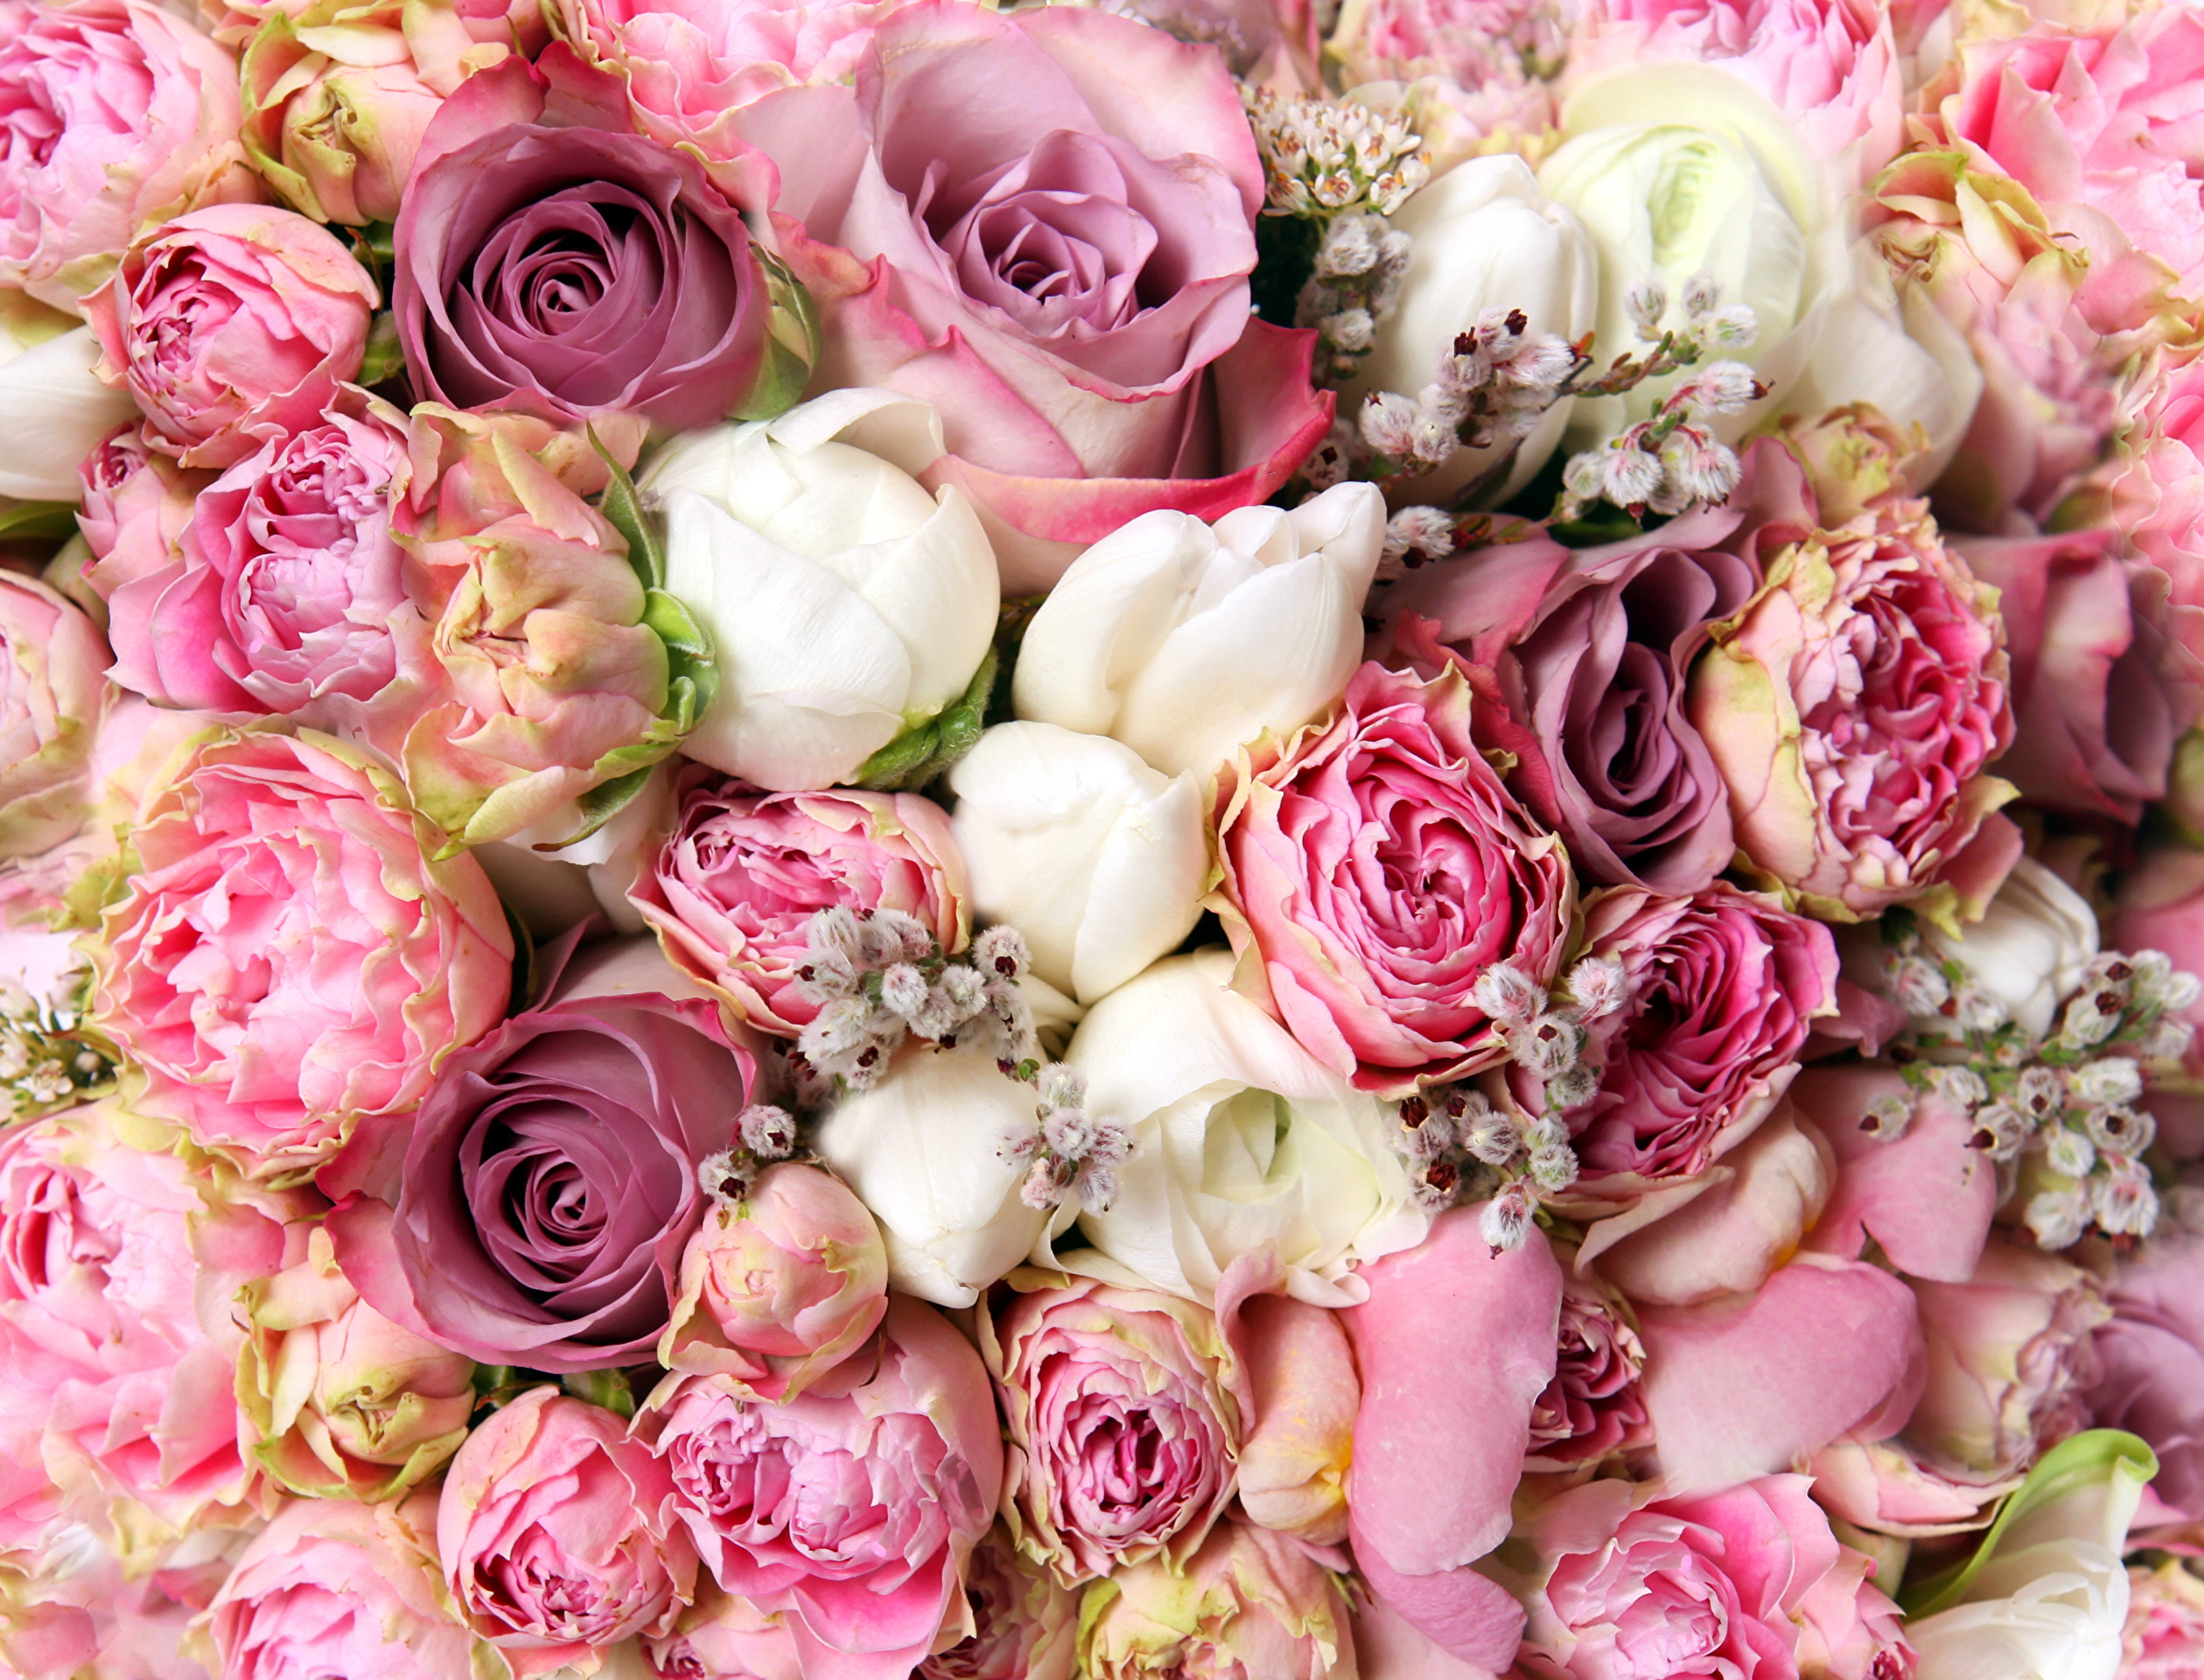 Bouquets_Roses_363243.jpg